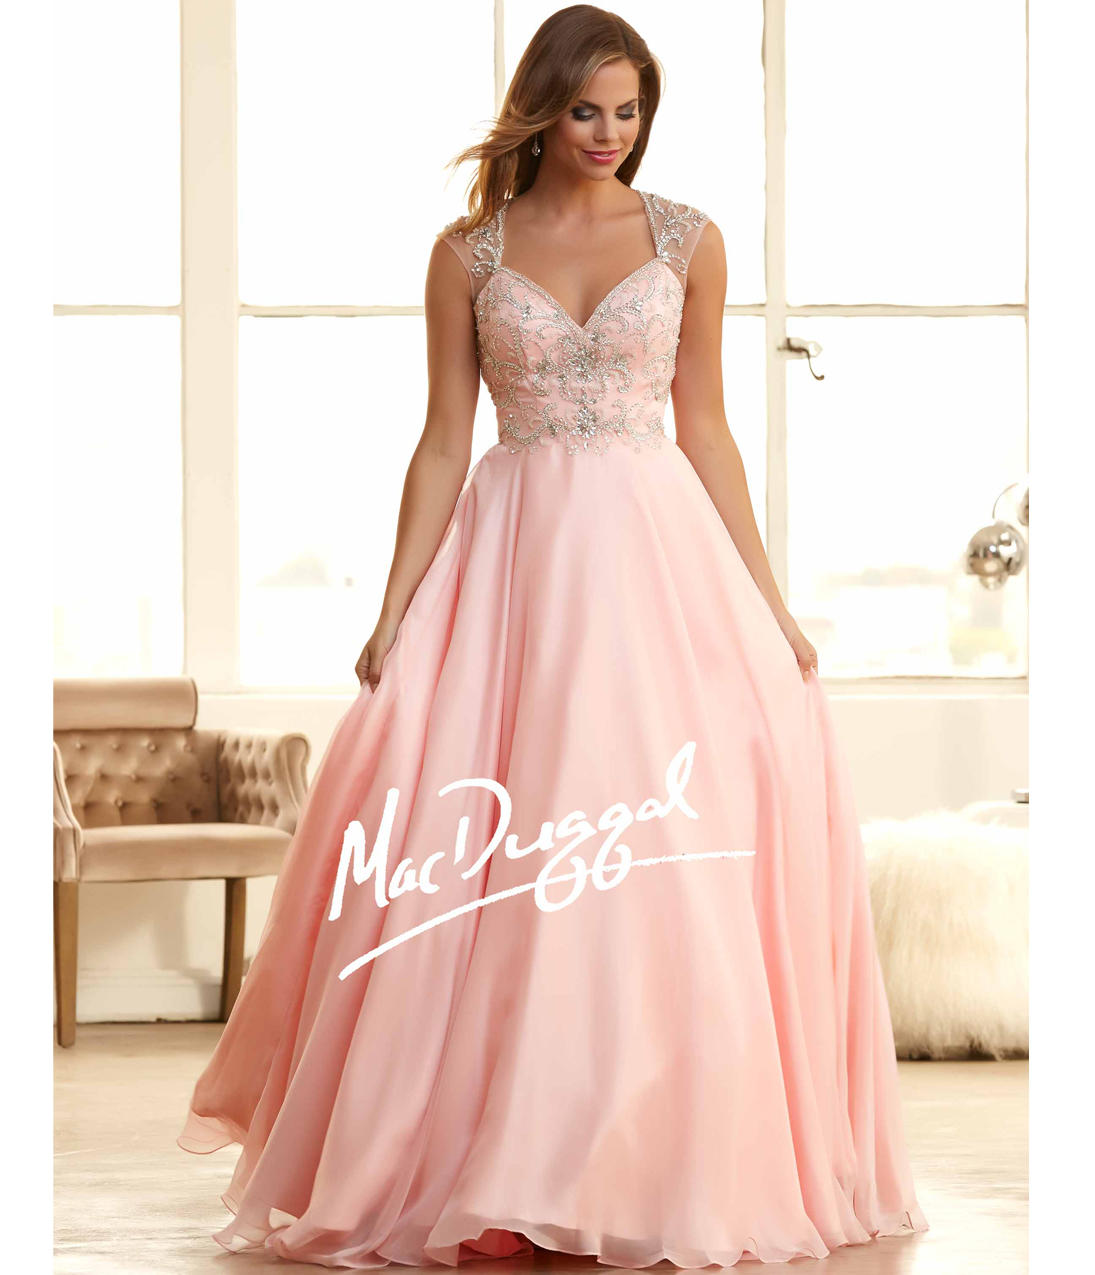 Mac duggal 65083h blush pink embellished from unique vintage mac duggal 65083h blush pink embellished sweetheart ball gown 2015 prom dresses ombrellifo Gallery